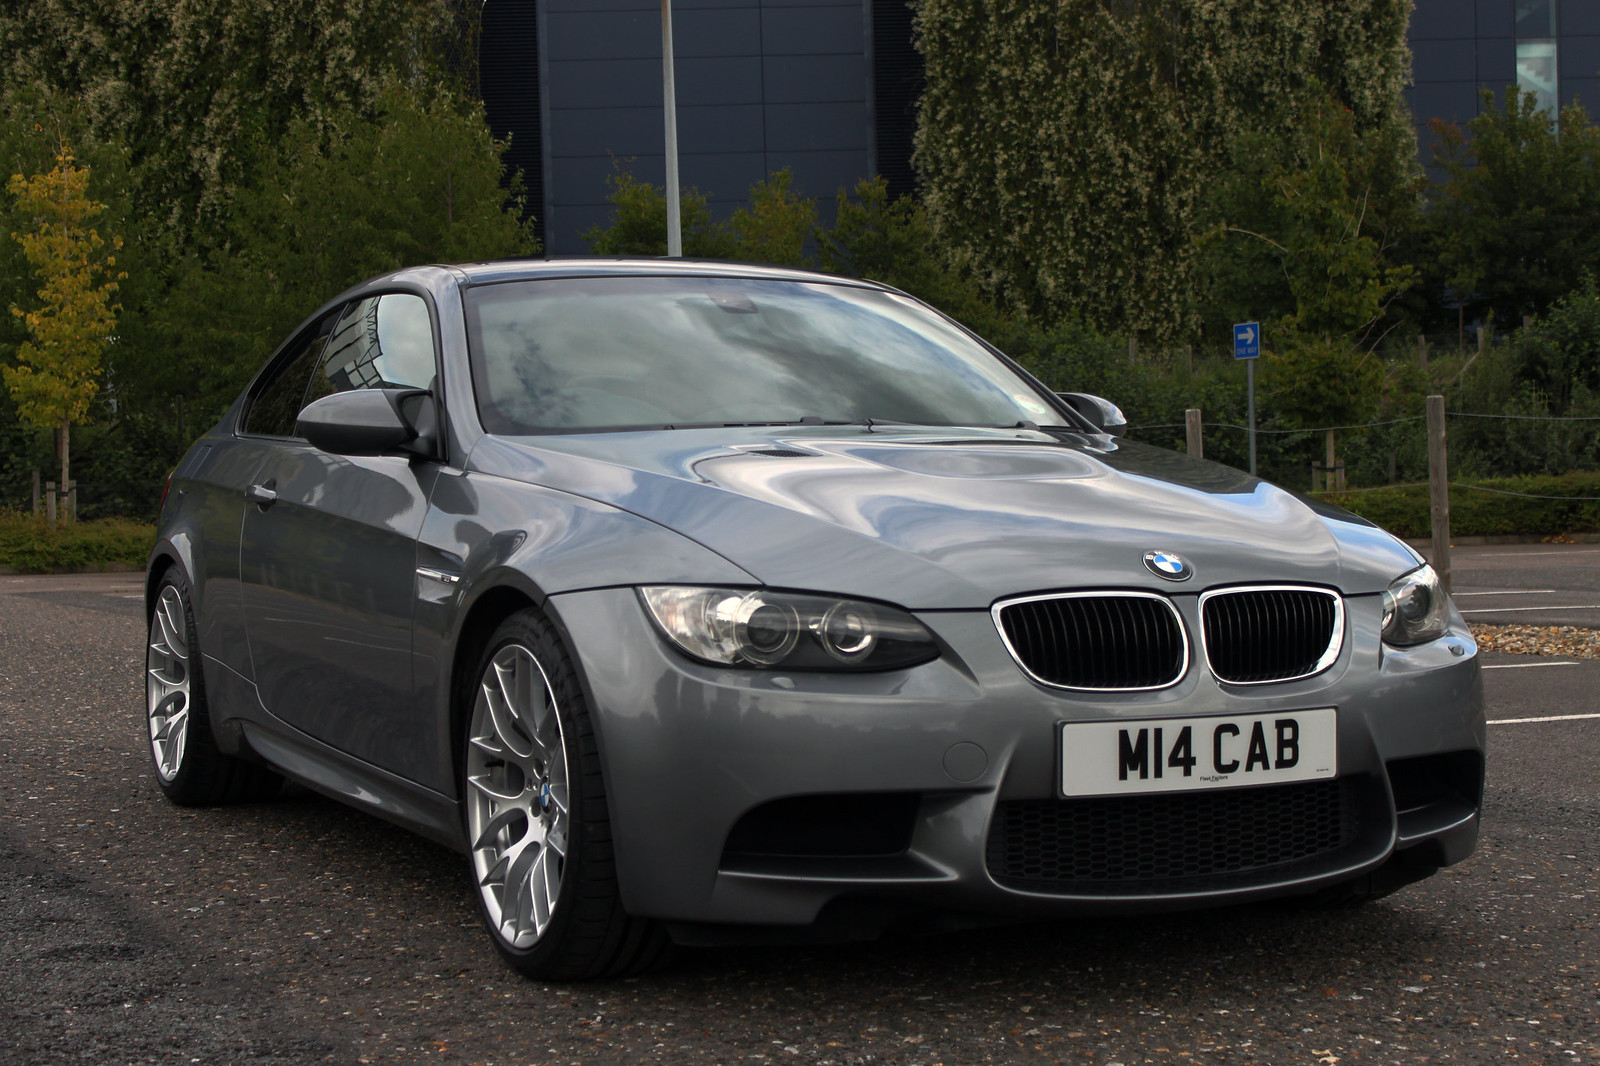 e92 m3 competition wheels added the m3cutters uk bmw m3 group forum. Black Bedroom Furniture Sets. Home Design Ideas